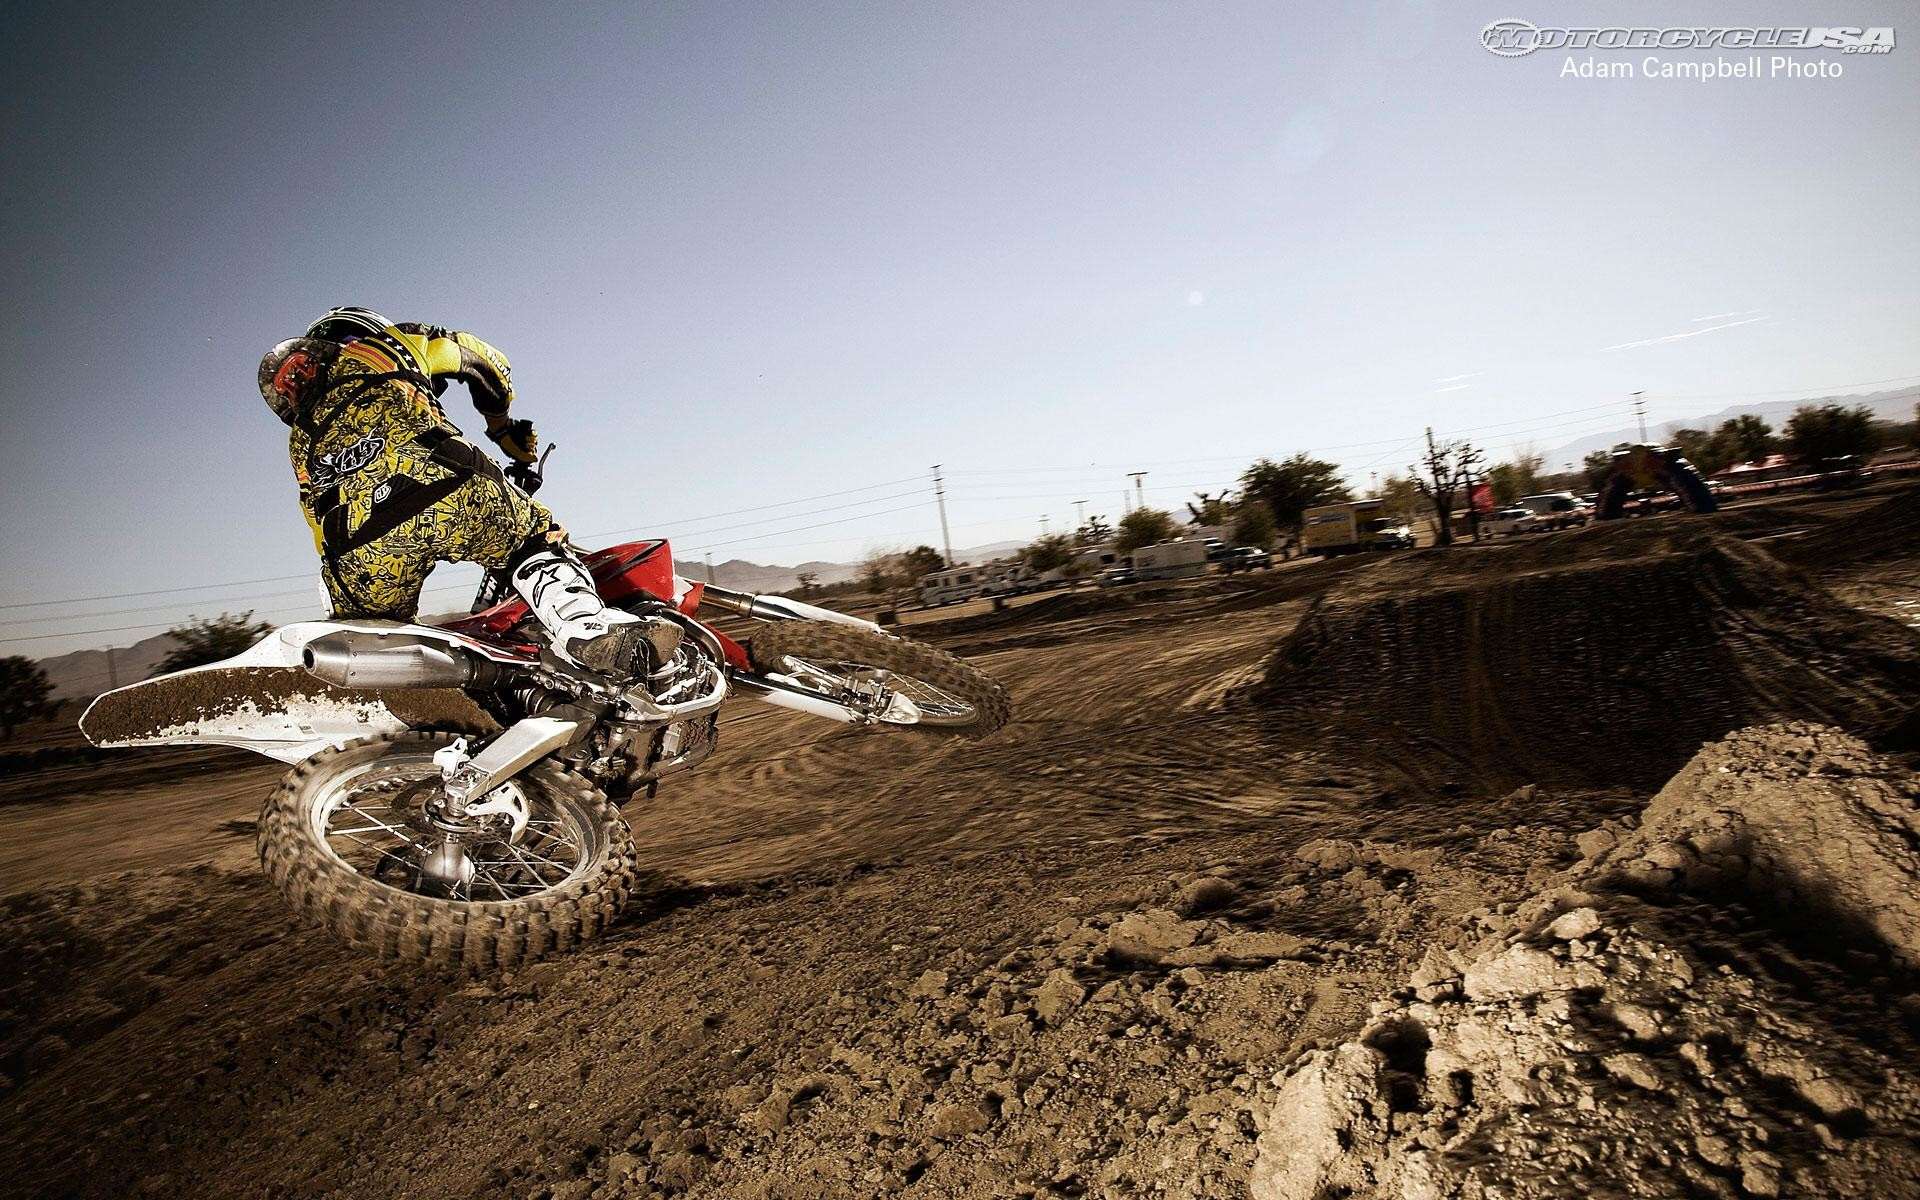 Motocross Hd Wallpapers Widescreen Motocross Screensavers Wallpapers 76 Images